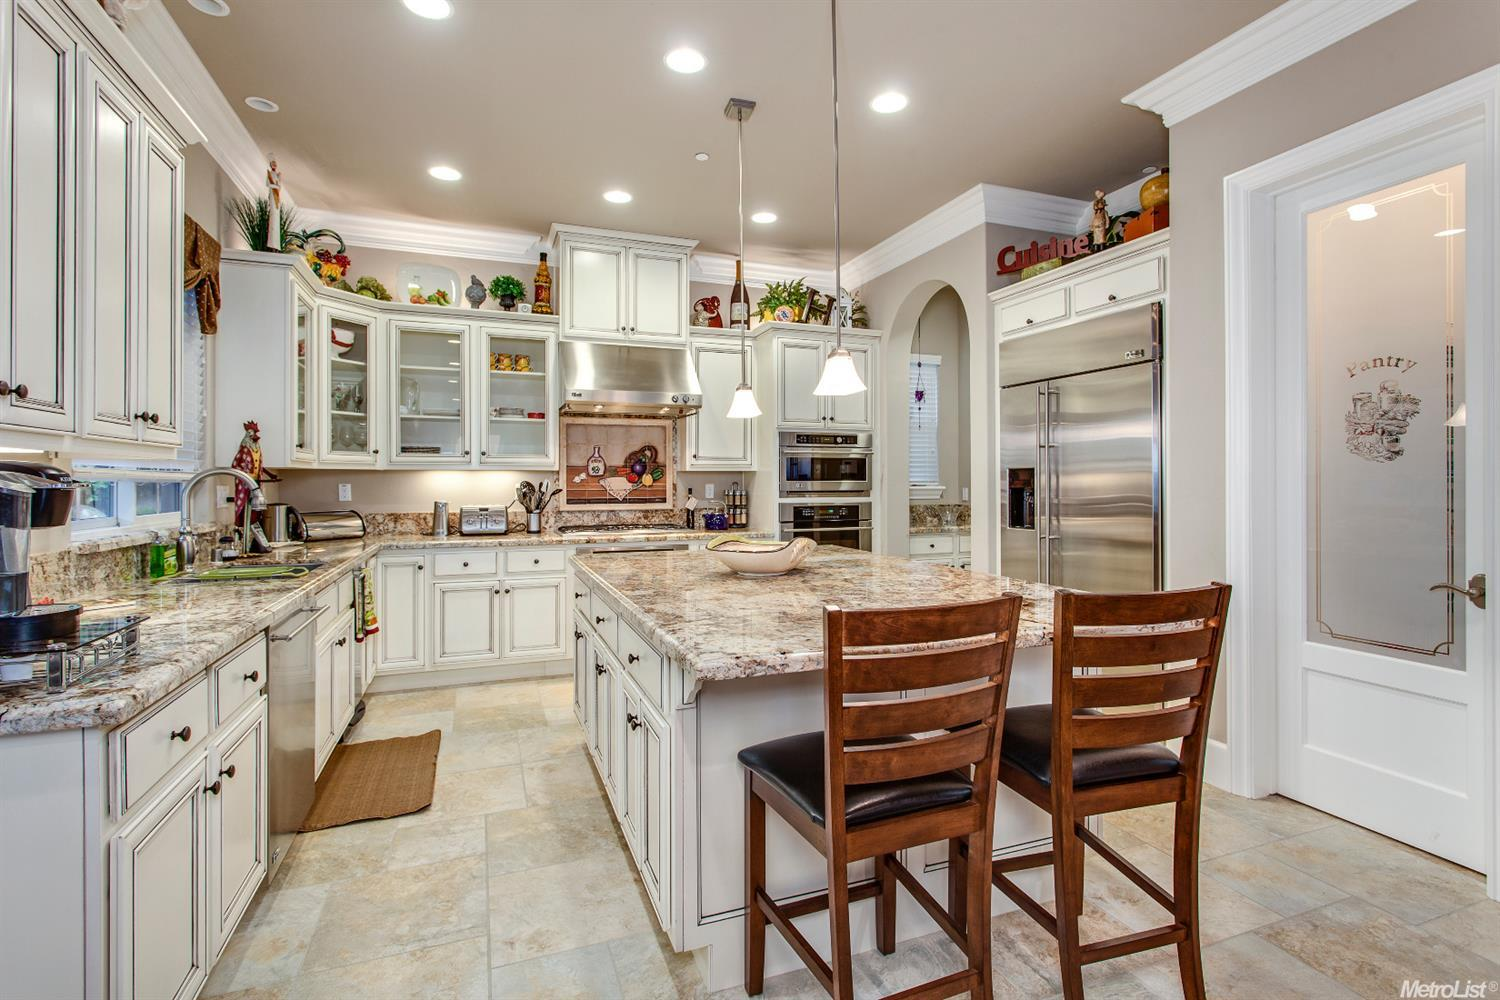 Additional photo for property listing at 4280 Great Oak Circle  GRANITE BAY, CALIFORNIA 95746